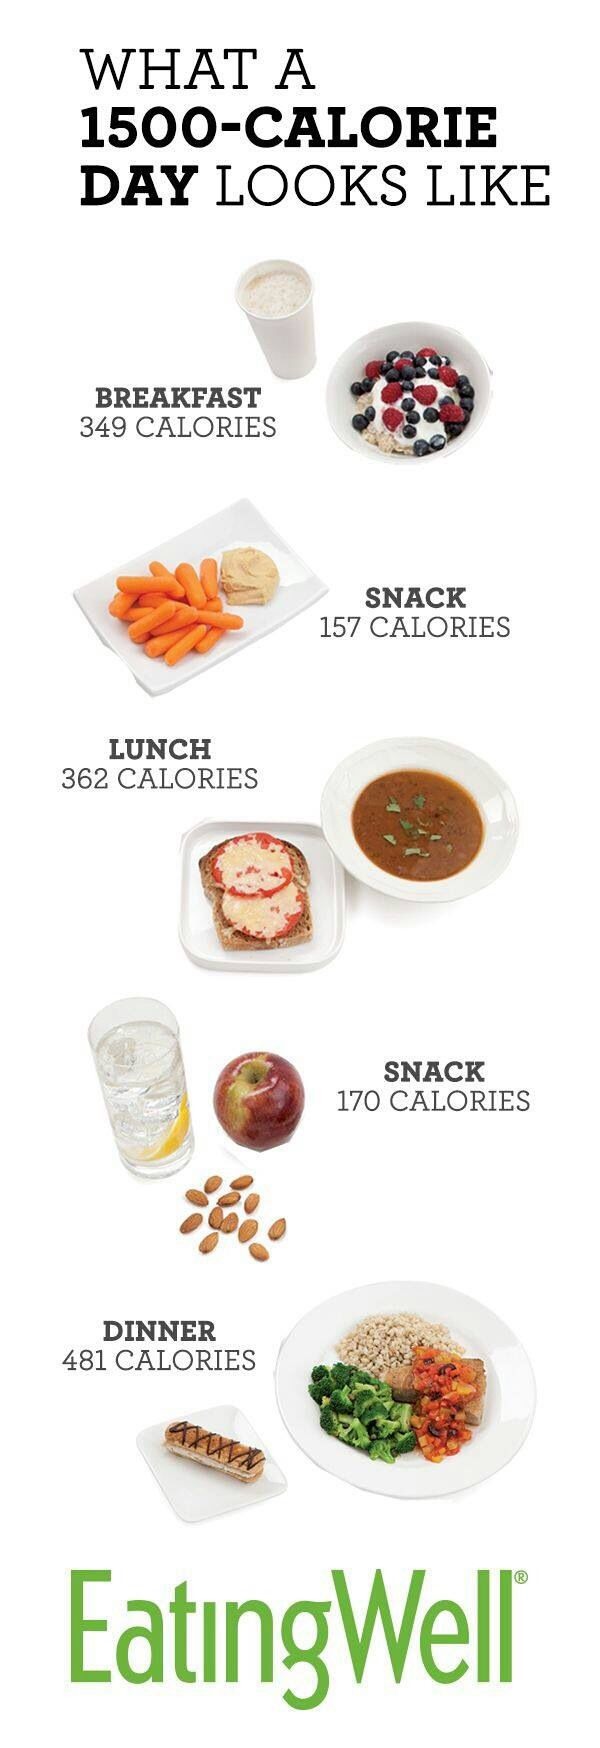 How Many Calories Should I Eat! (The Definitive Guide)